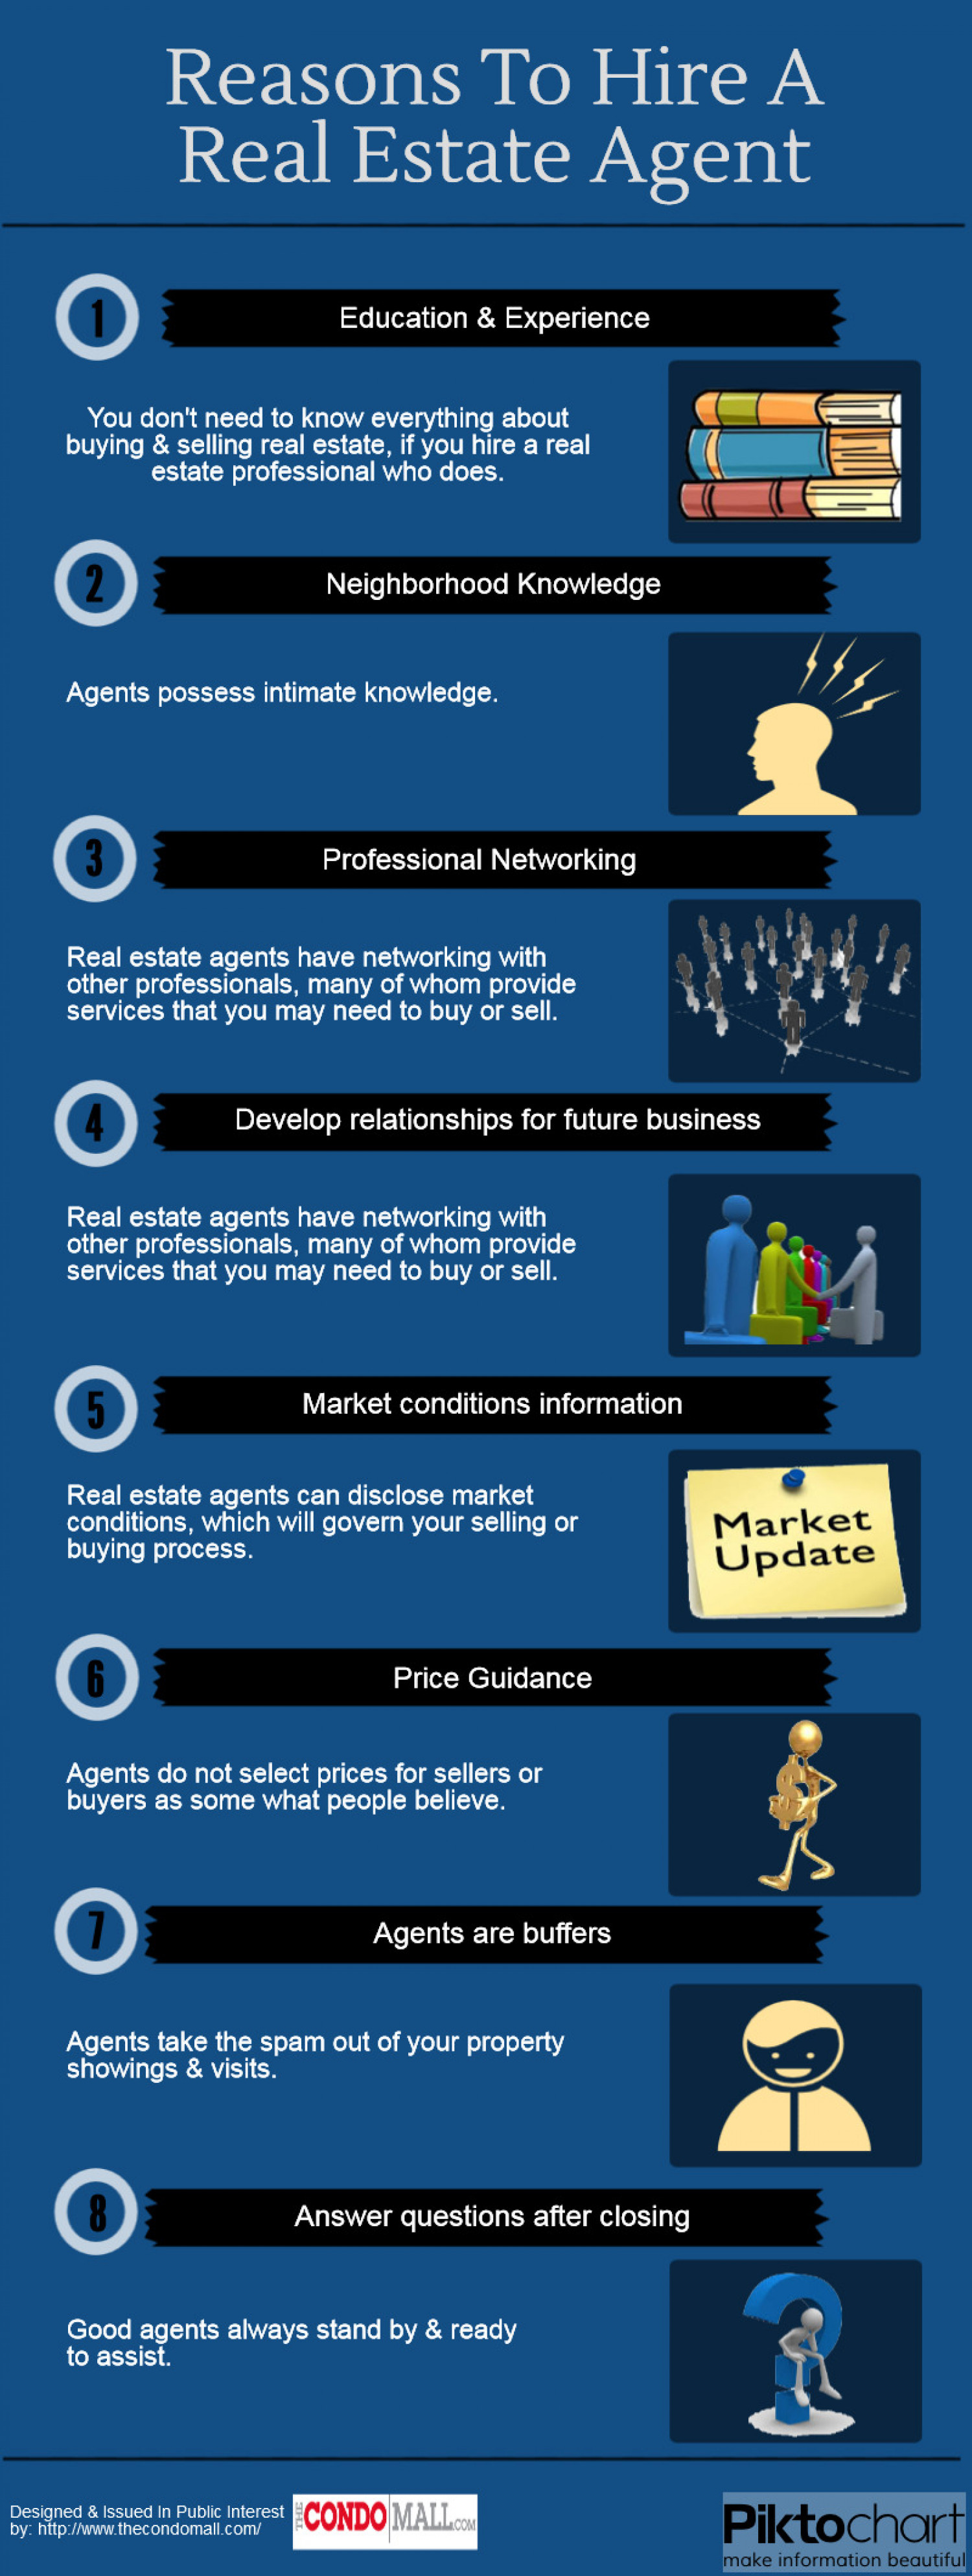 Reasons To Hire A Real Estate Agent Infographic